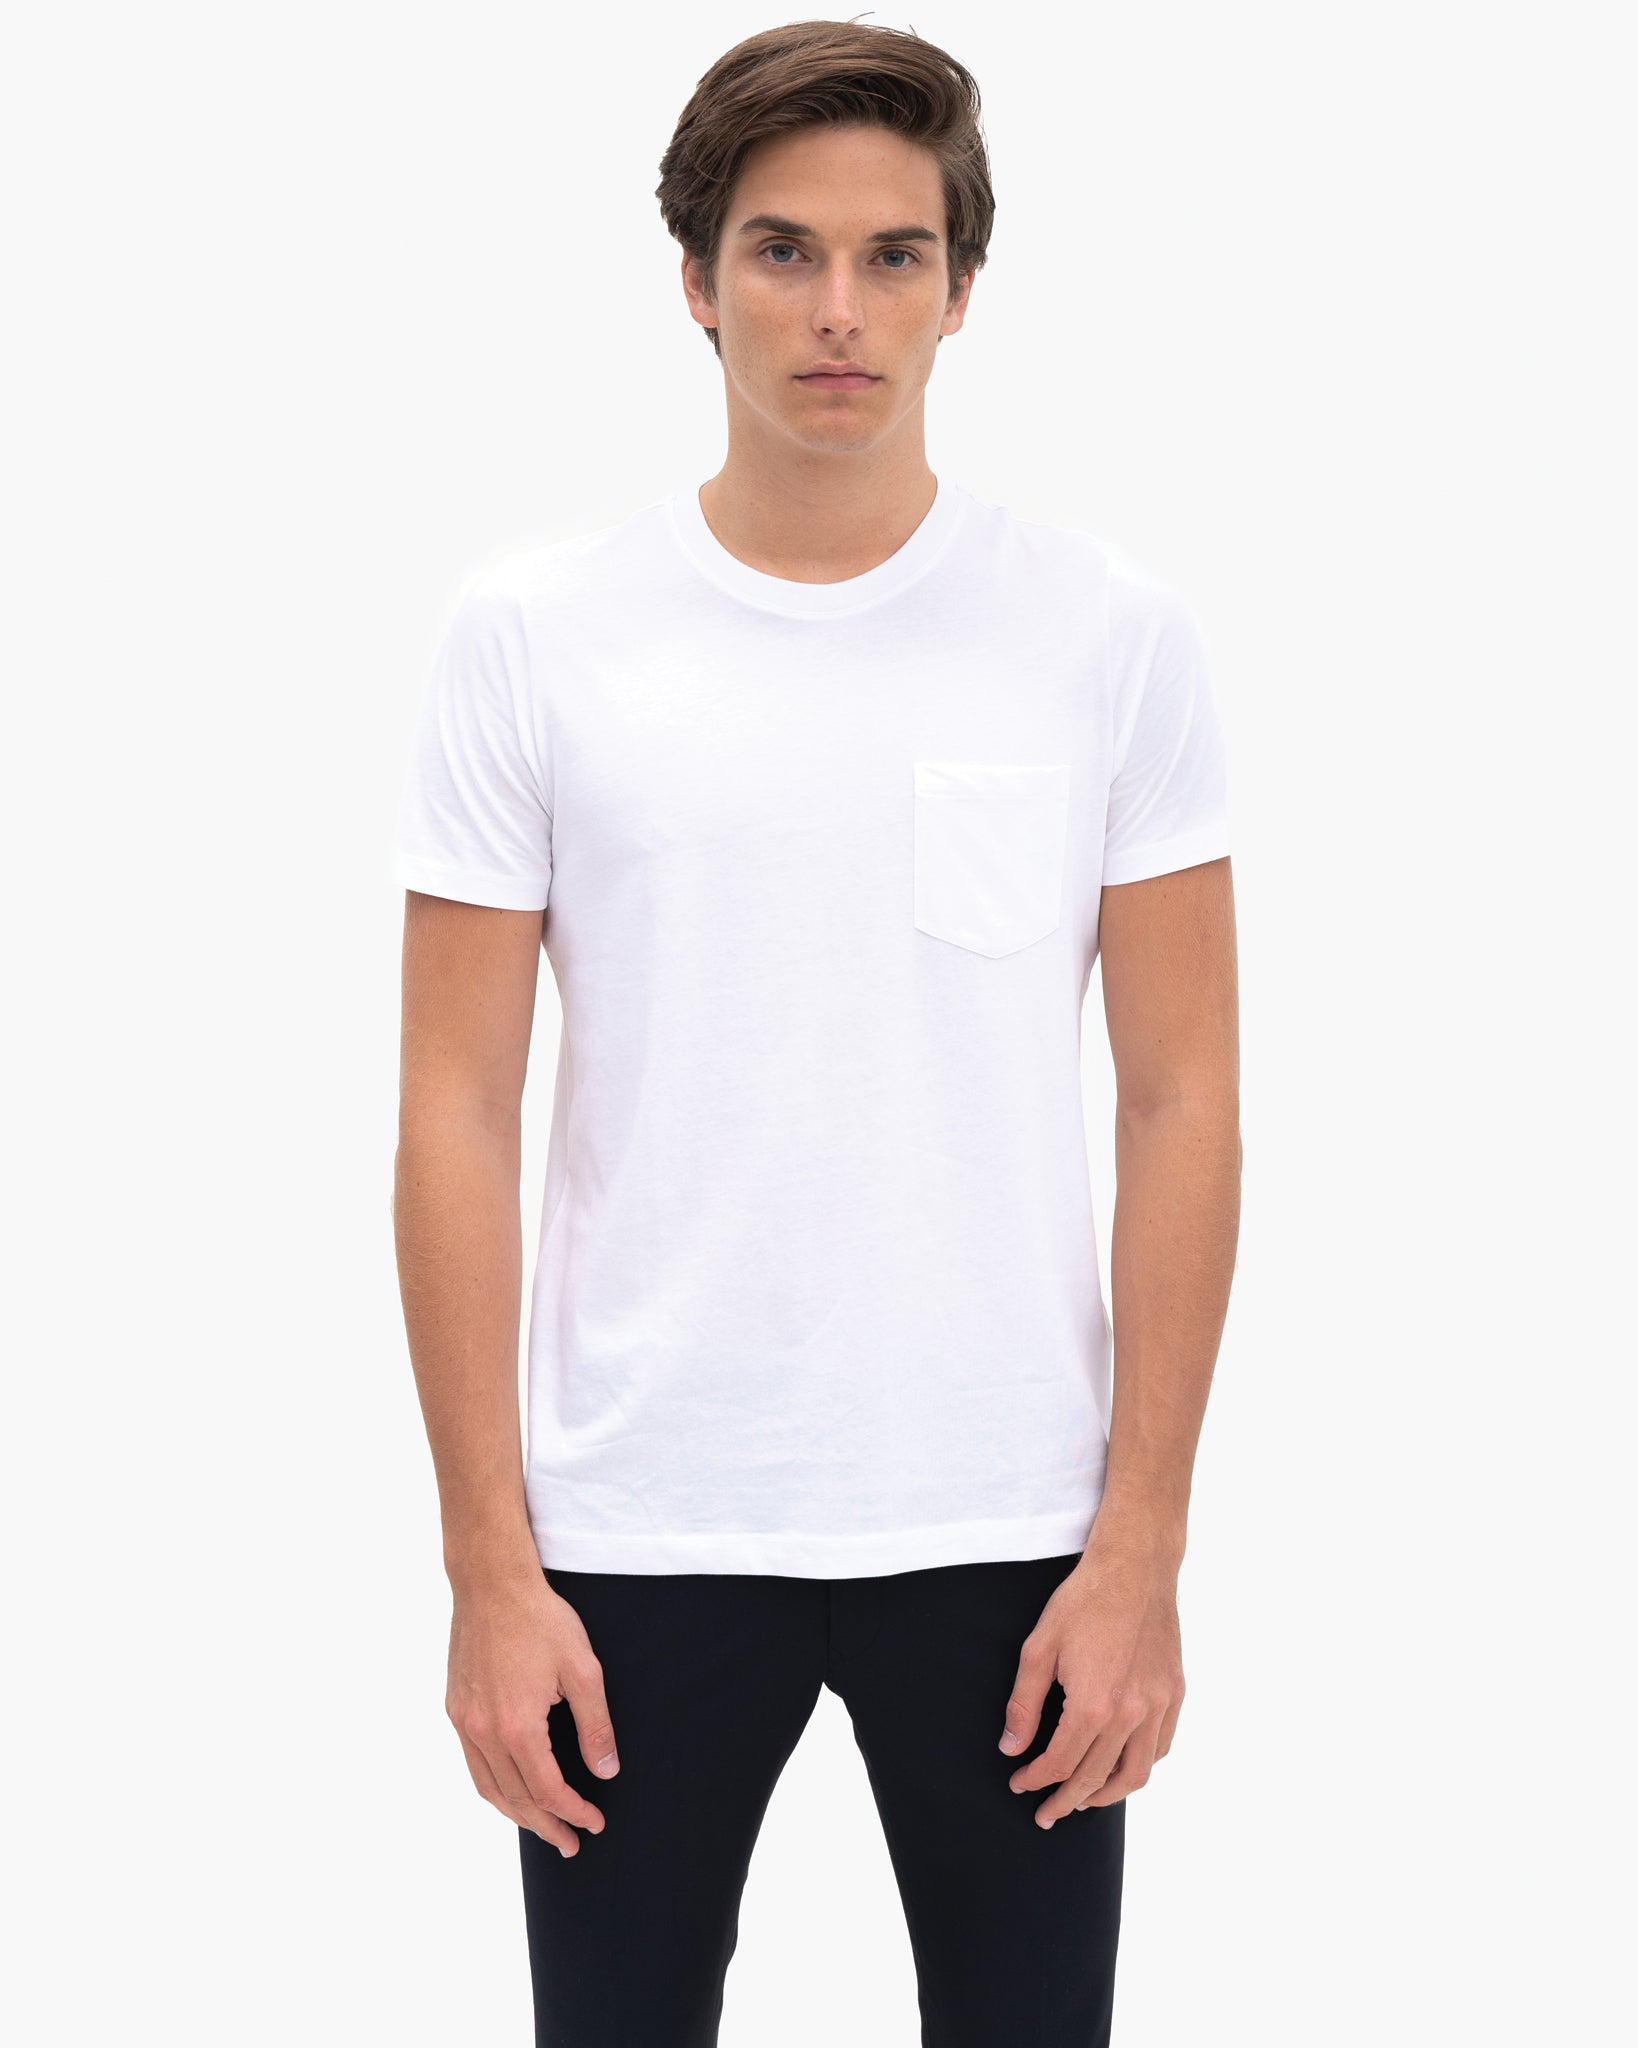 Men Organic Cotton Crew Neck with Pocket White Featured